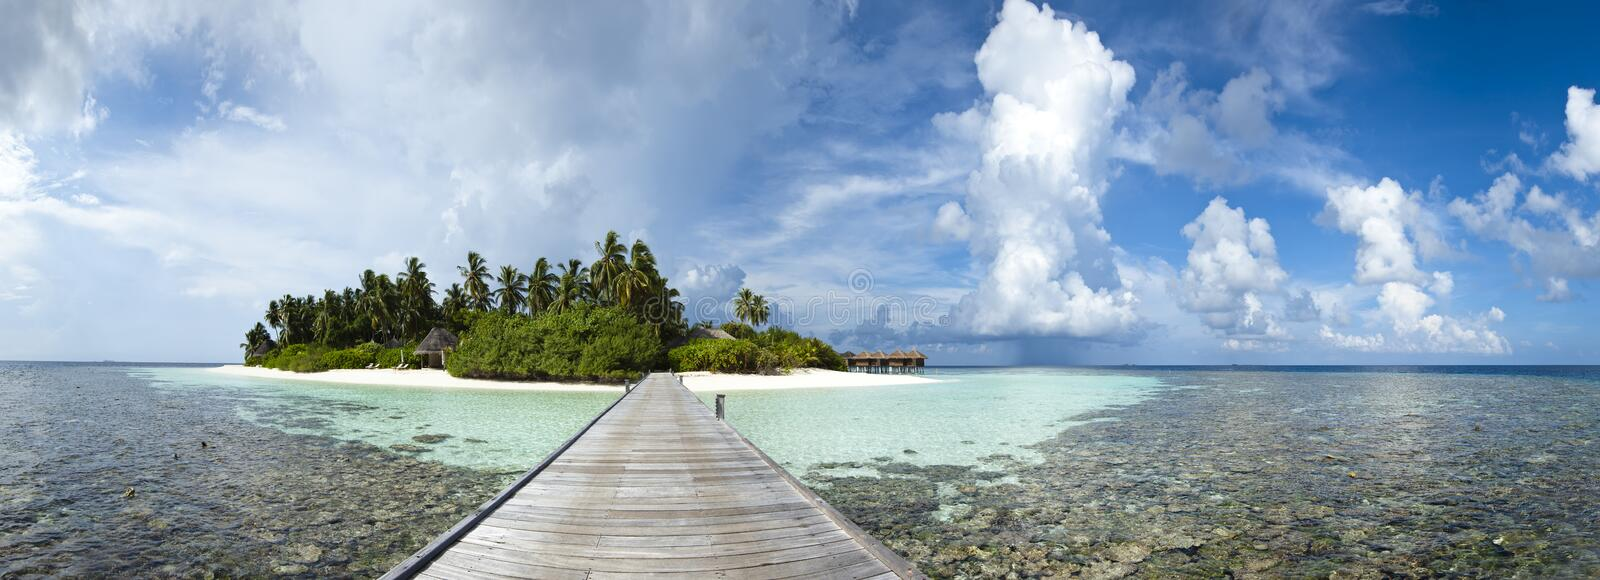 Download Panoramic View Of A Paradise Island Stock Photo - Image: 22932732